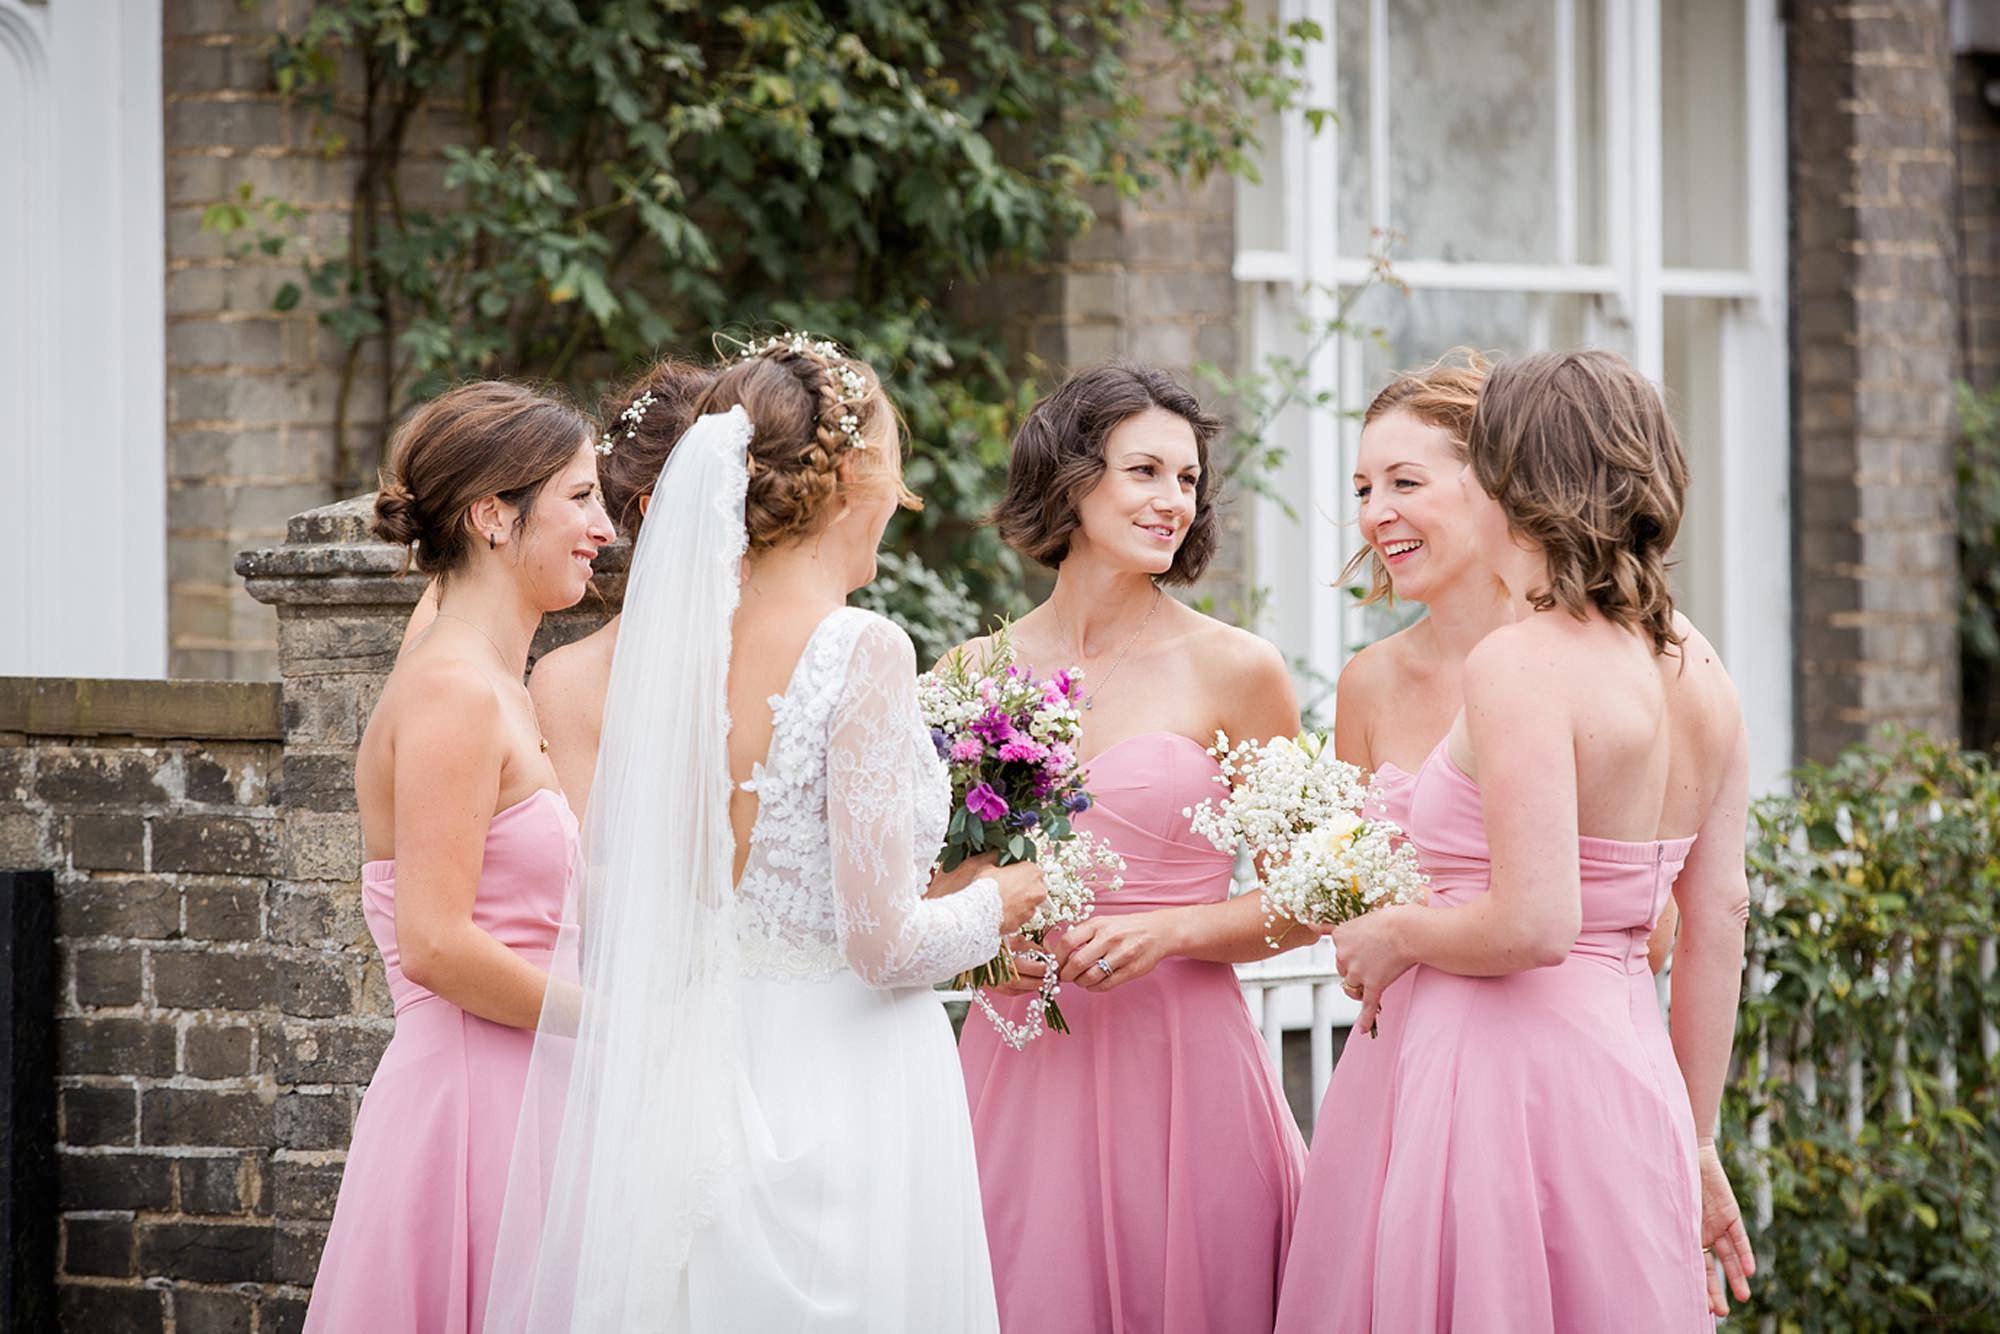 Marks Hall Estate wedding photography bride and bridesmaids outside house